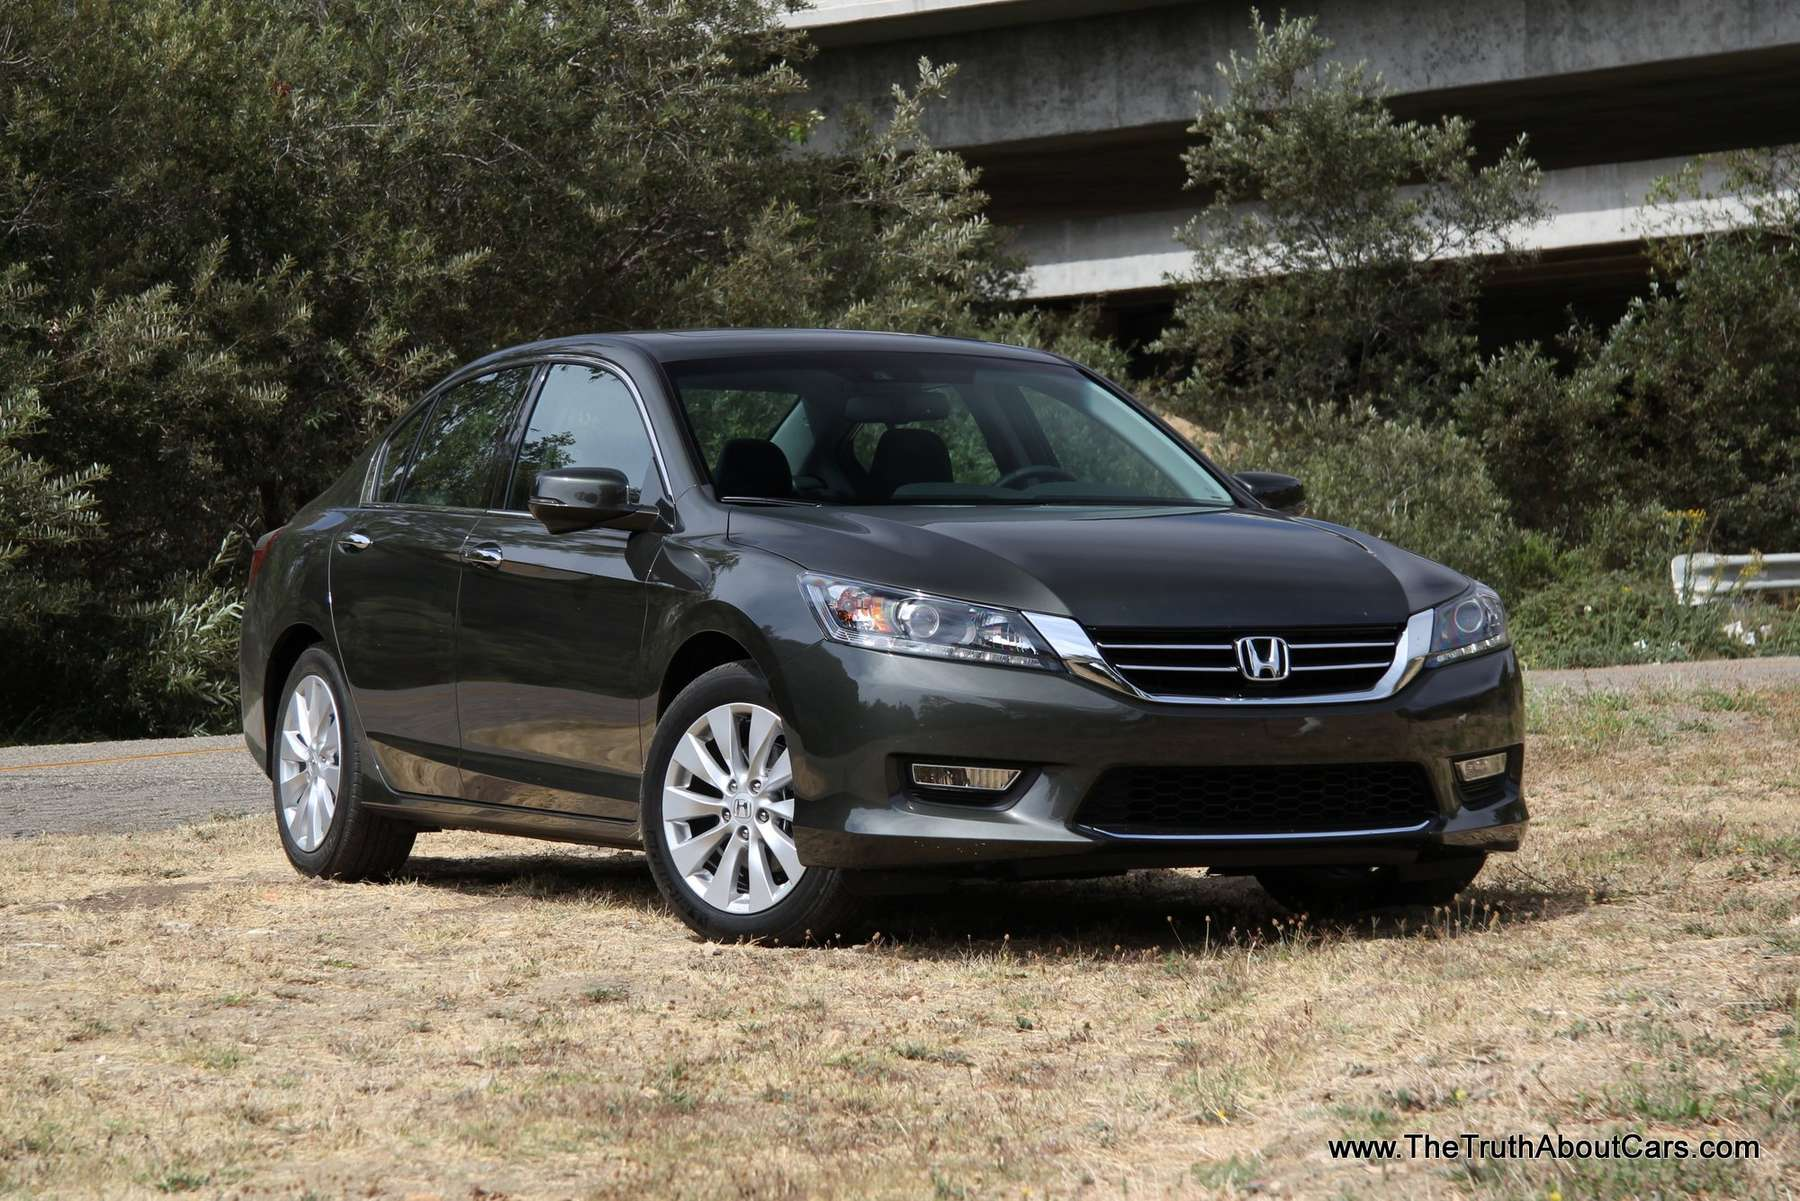 Honda Accord #7904998